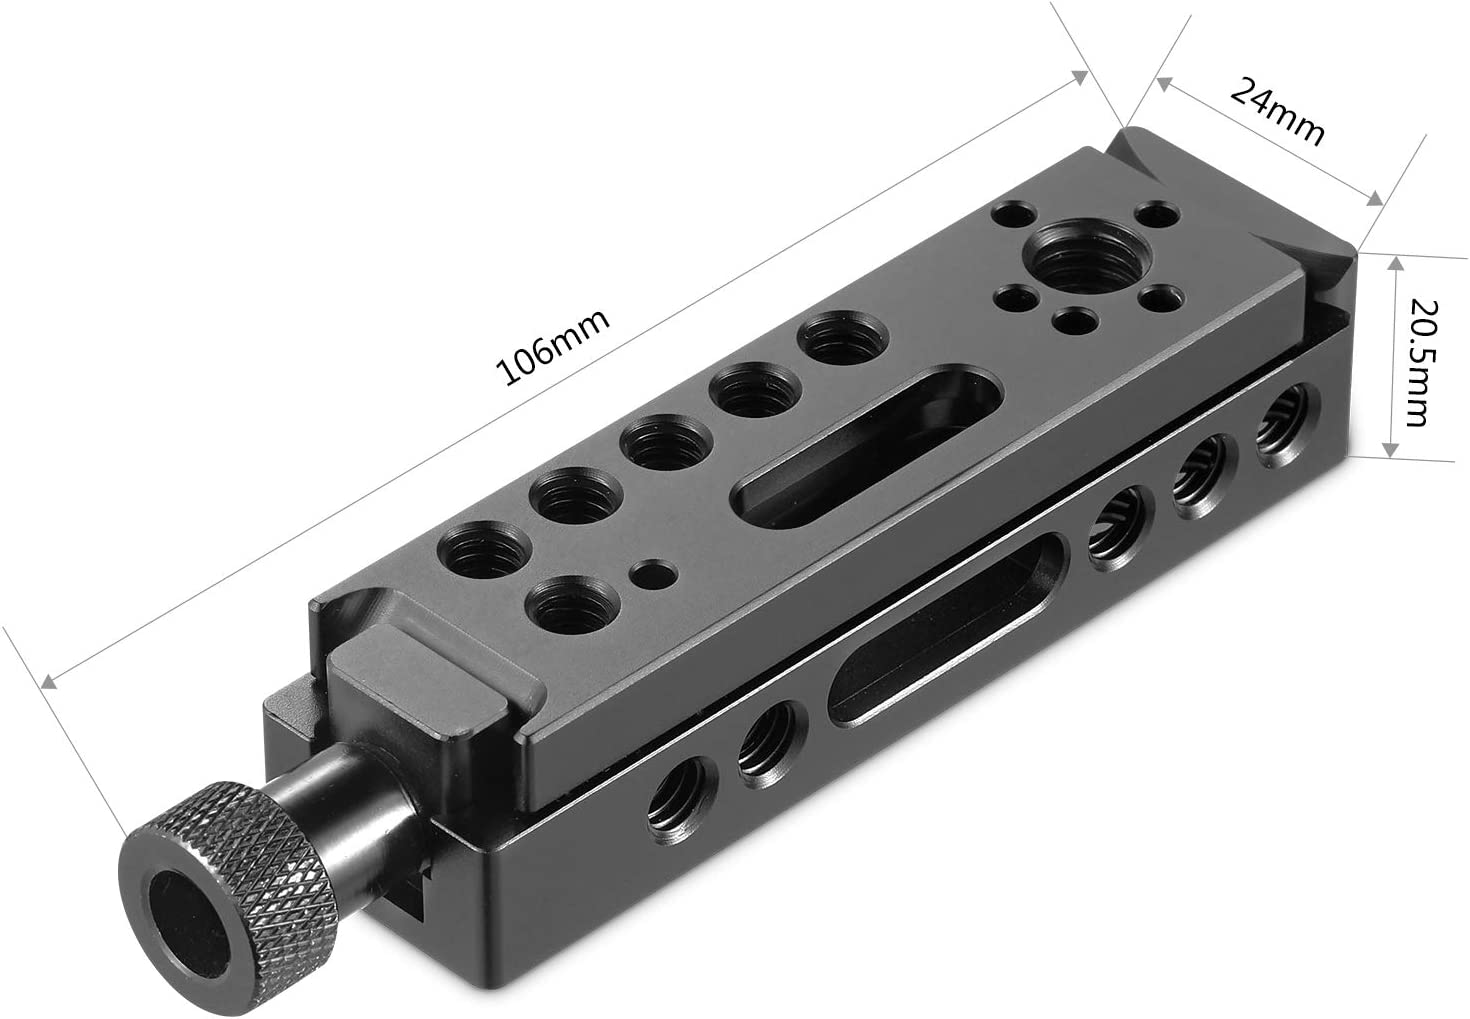 2107 SMALLRIG Quick Release Mounting Bracket for Teradek Bolt Receivers and Transmitters